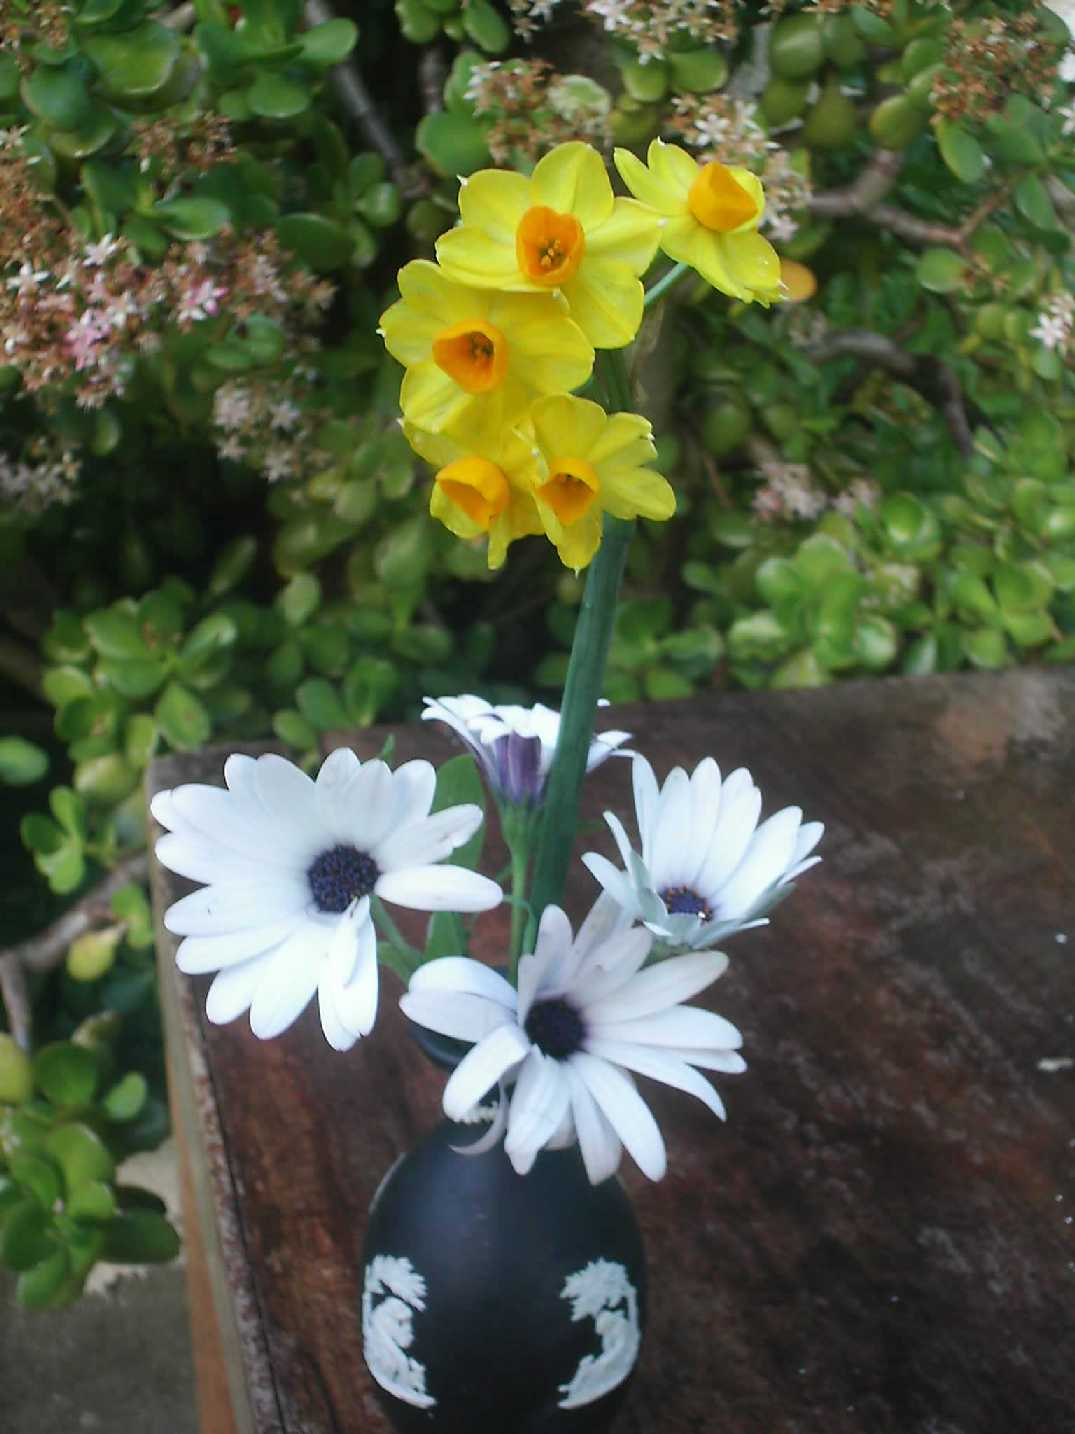 Jonquils and Swan River Daisies